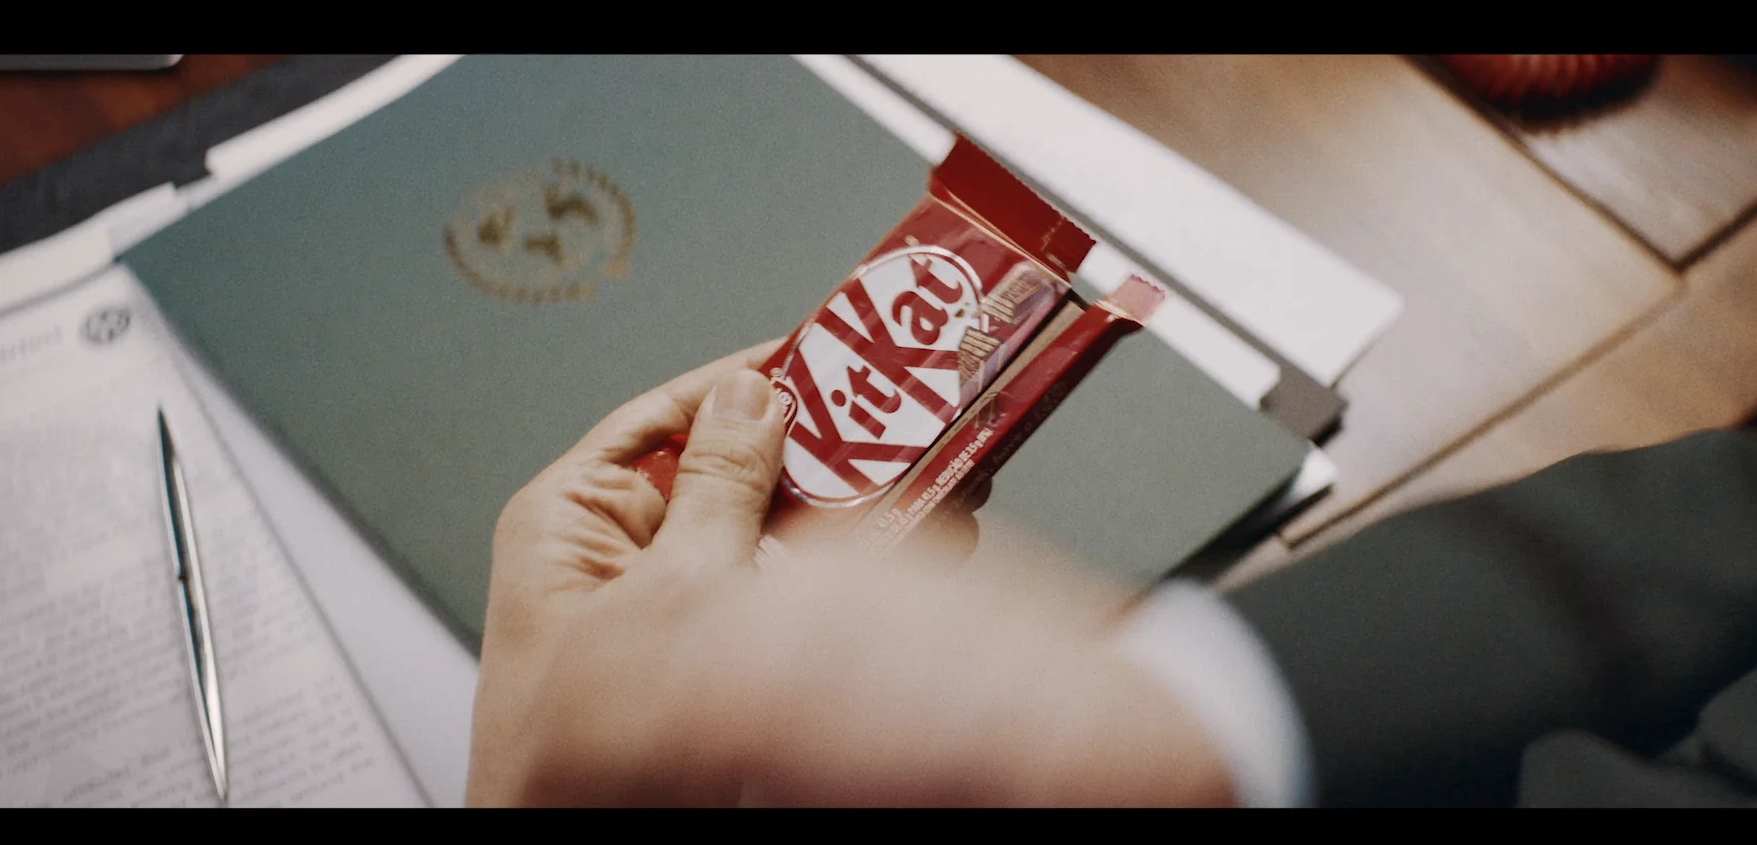 Kitkat Redphone Integrated Campaign